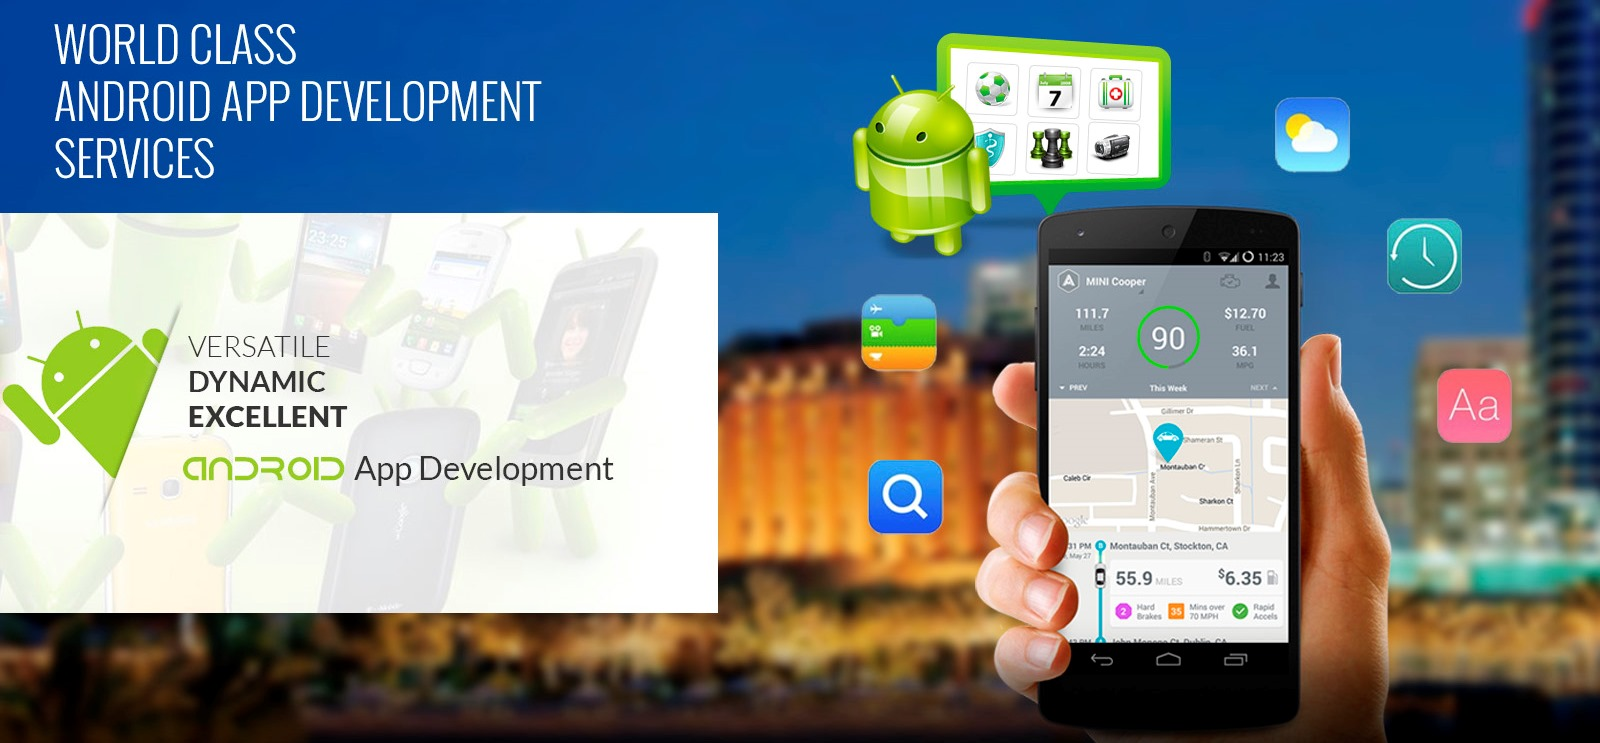 Enhance Your Android App Development Efforts With Ease - Image 1